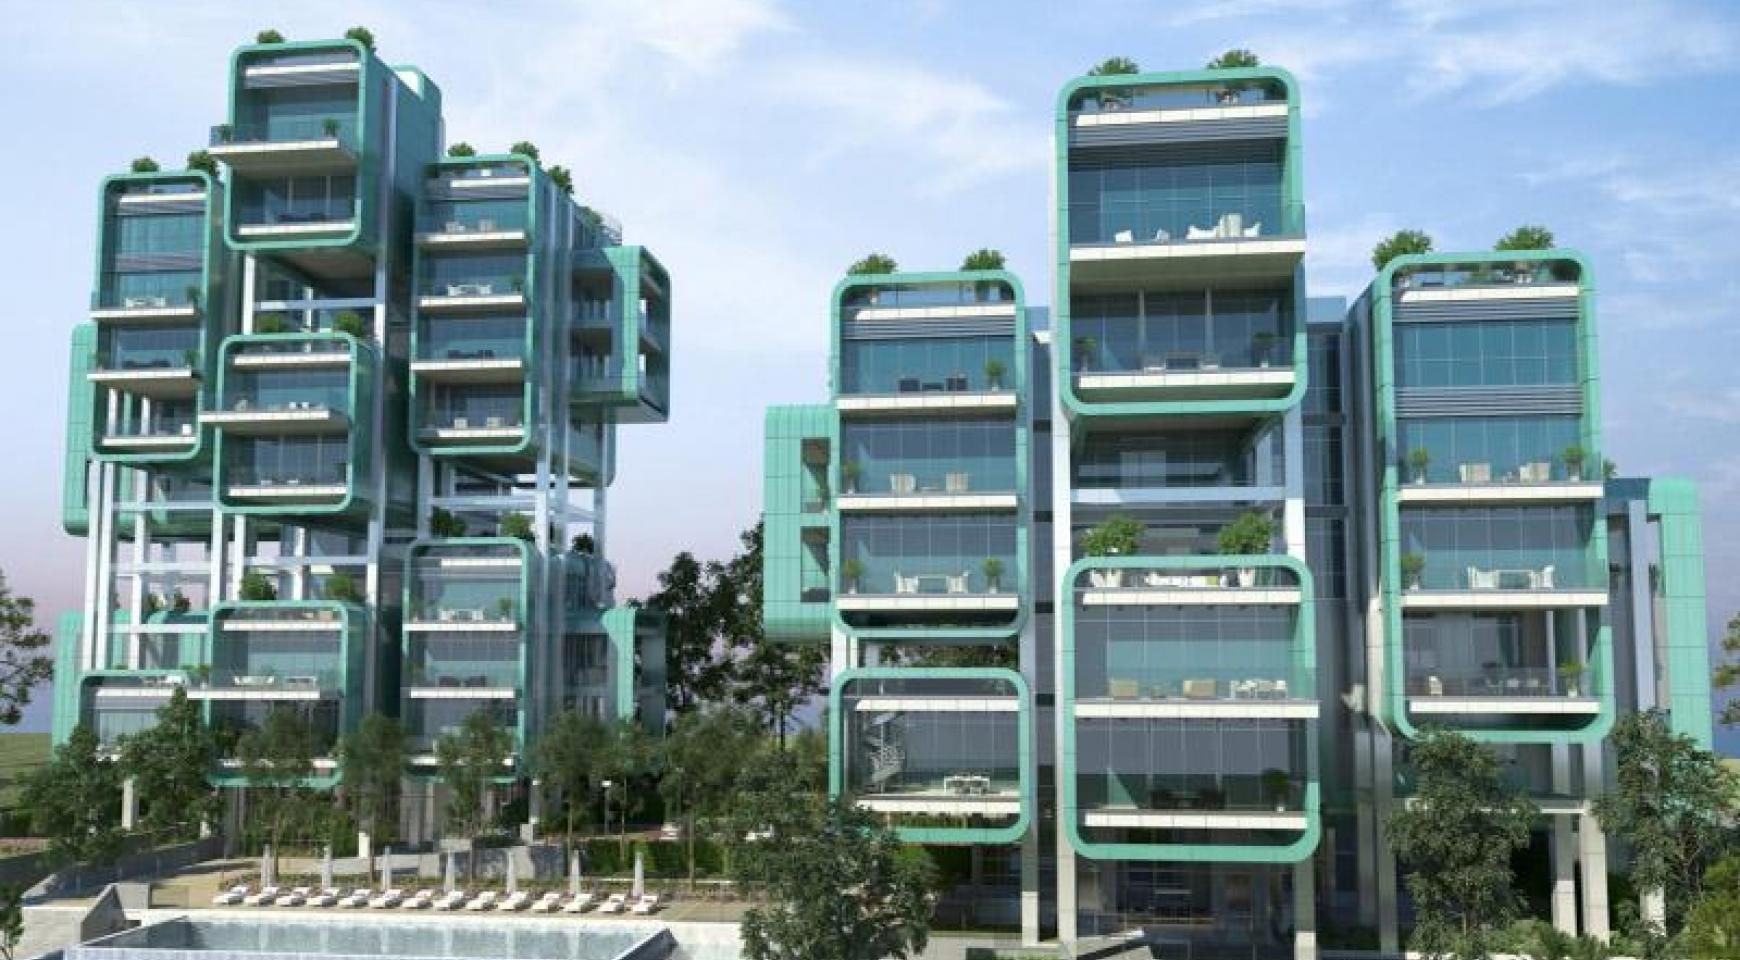 Elite 3 Bedroom Apartment within a New Complex near the Sea - 29